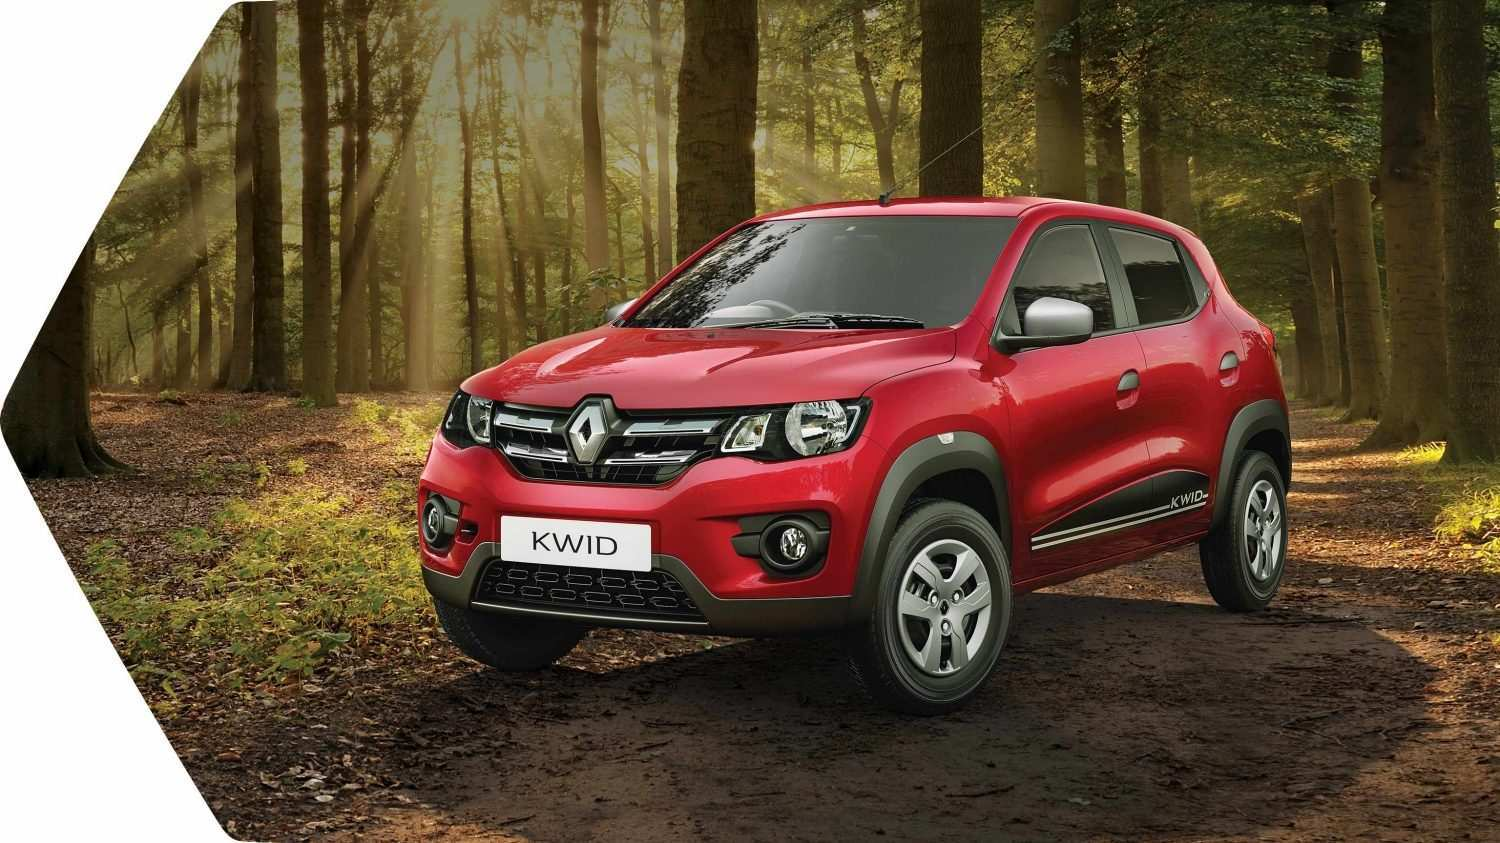 27 All New Dacia Kwid 2019 Ratings